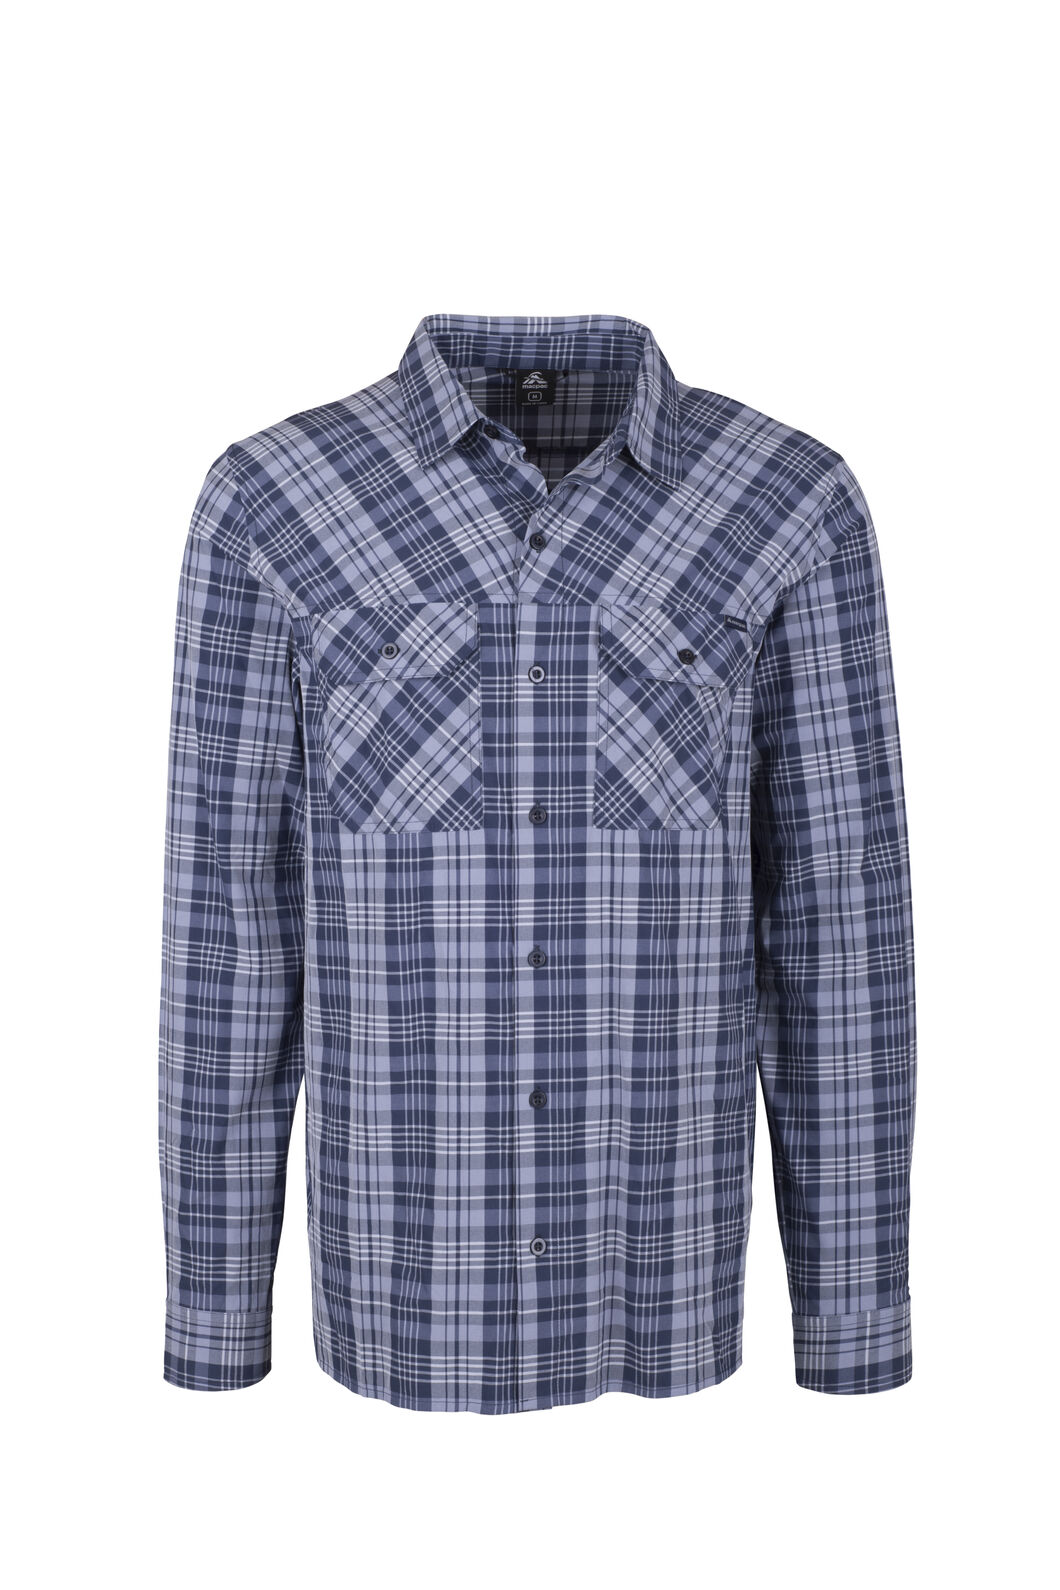 Macpac Crossroad Long Sleeve Shirt - Men's, Flint Stone, hi-res